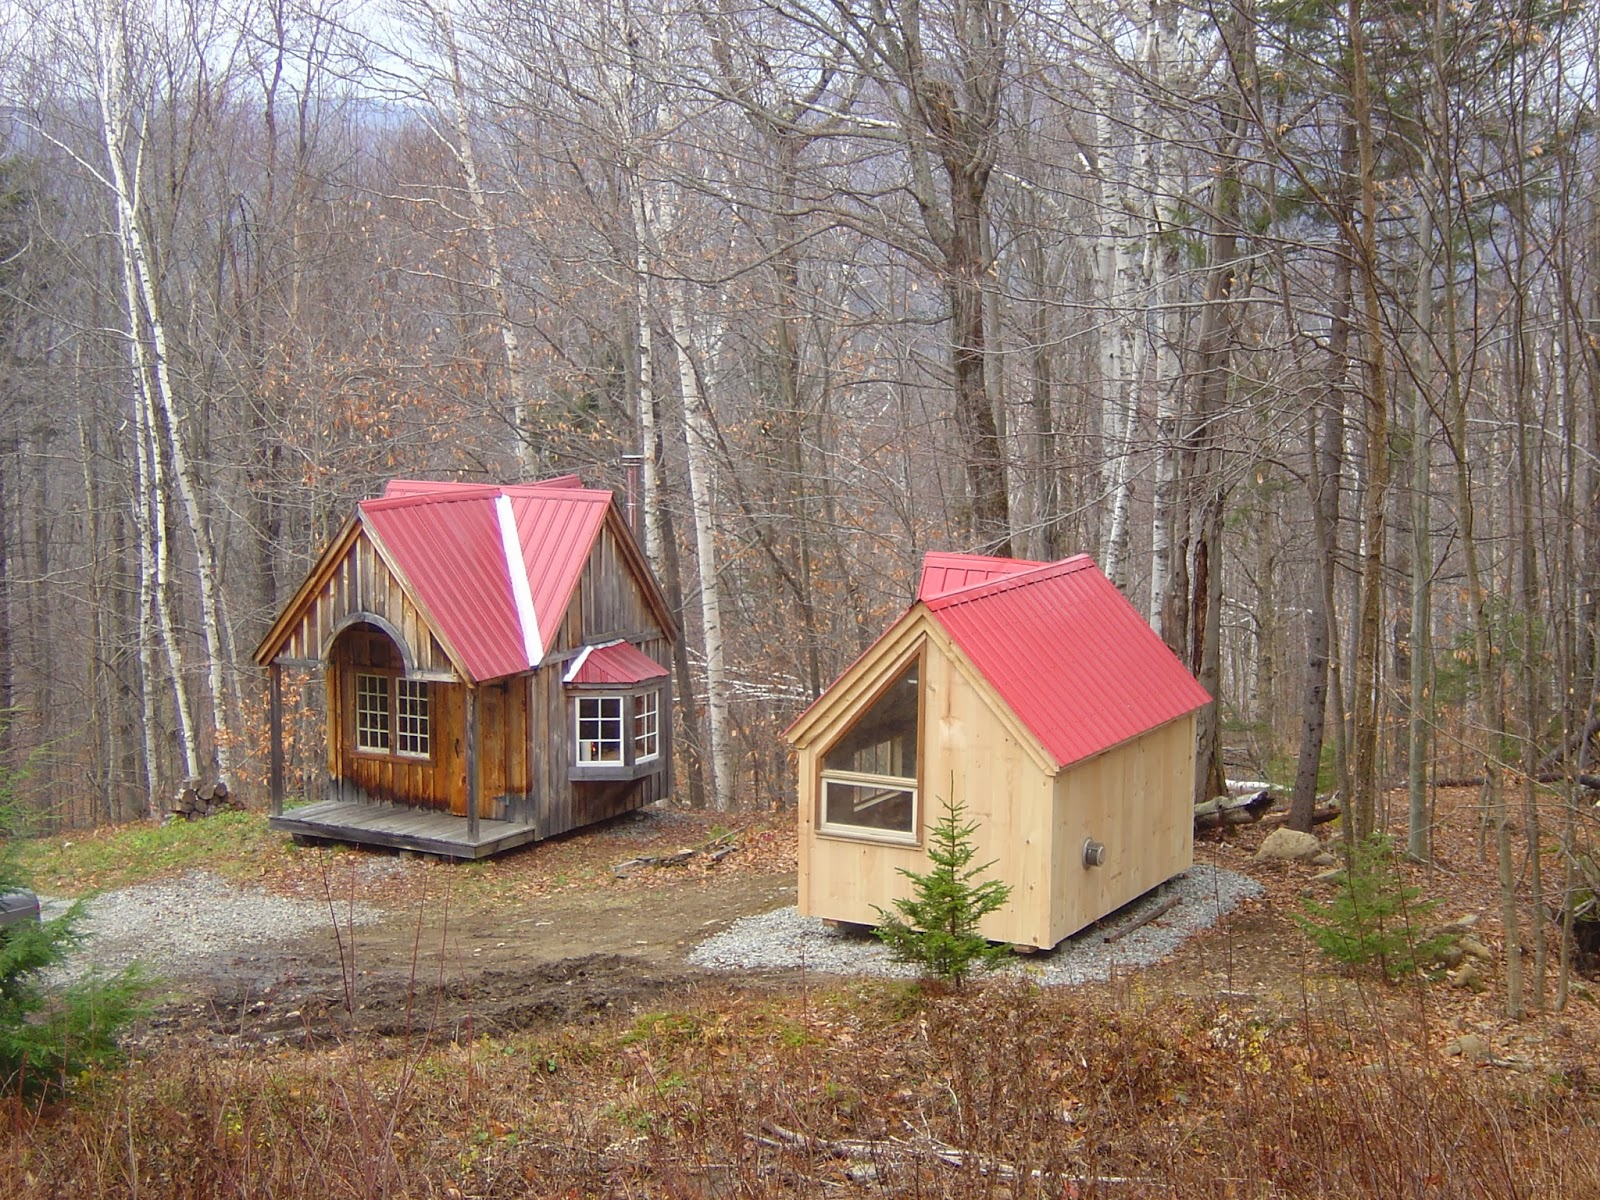 Tiny House N Shed Compound In New England Three Micro Cottages On A Mountain